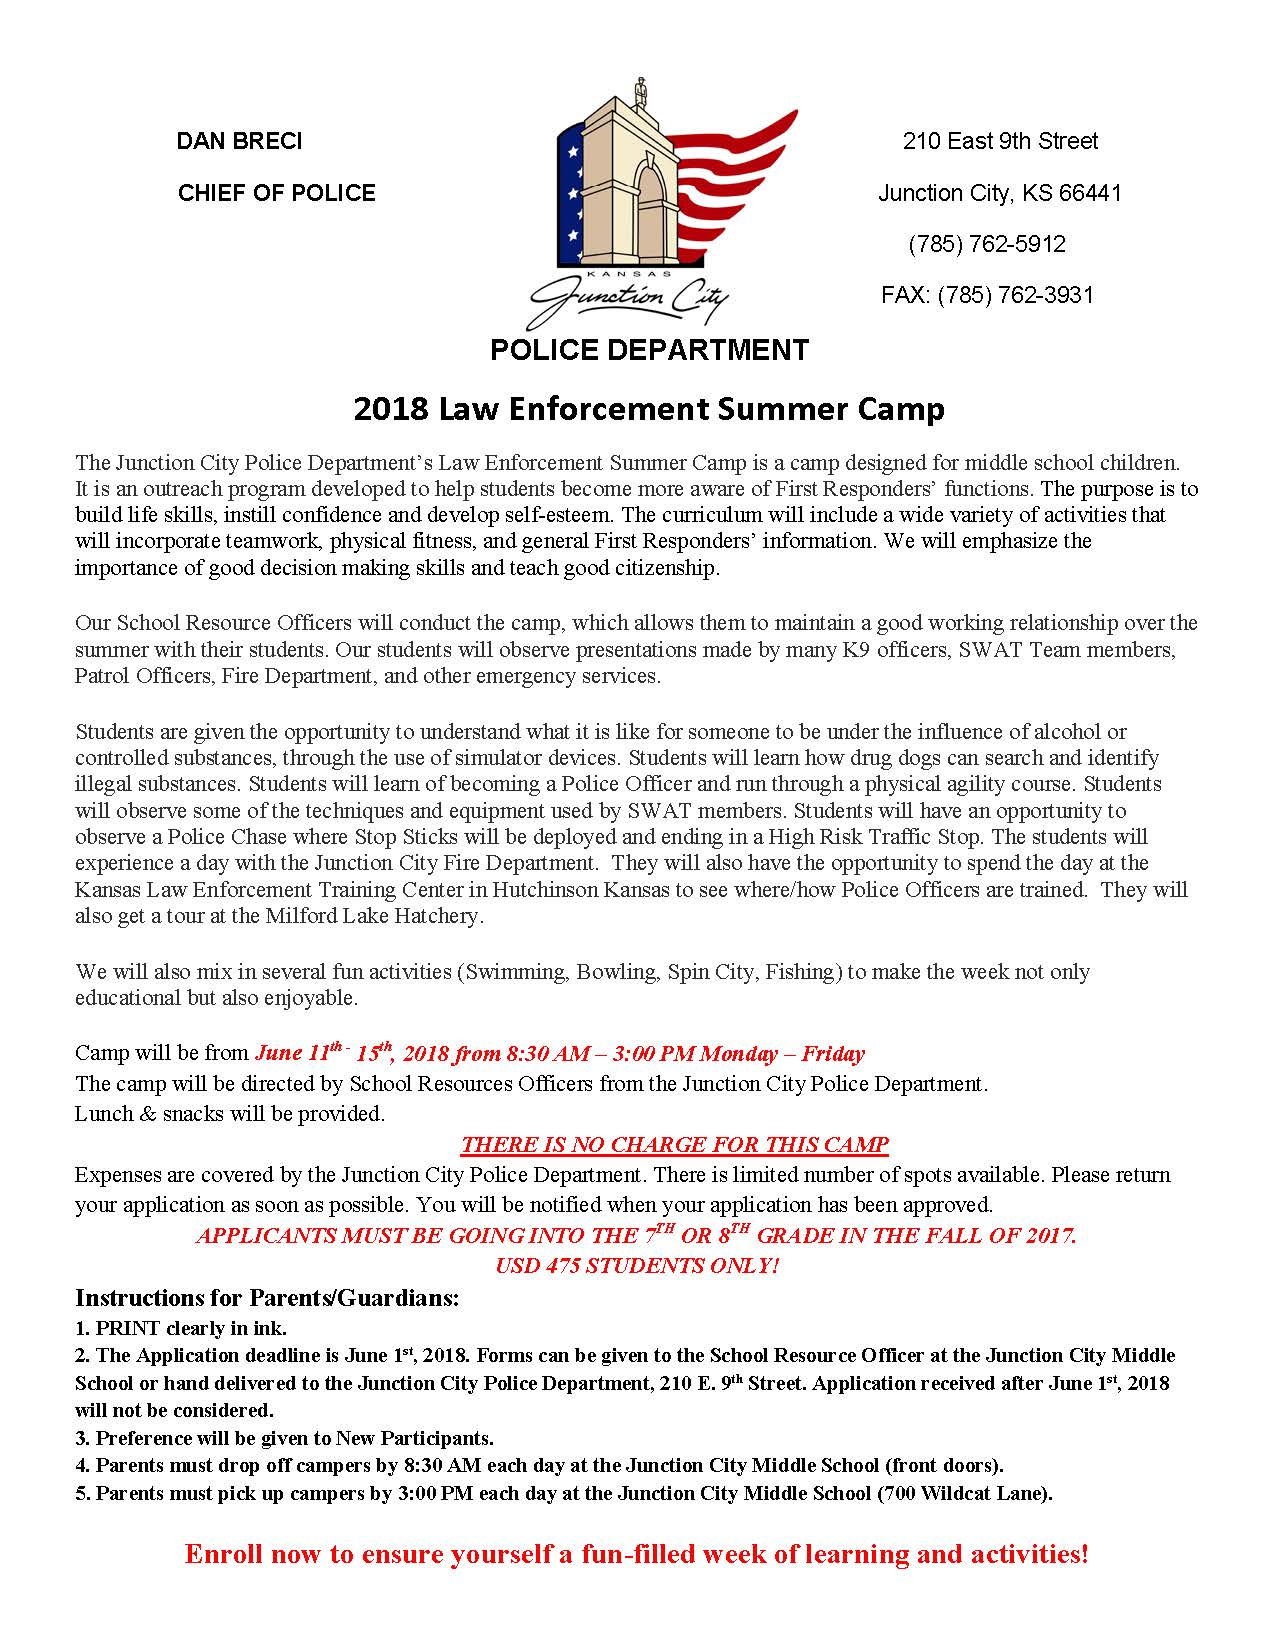 Summer Law Enforcement Camp Page 1